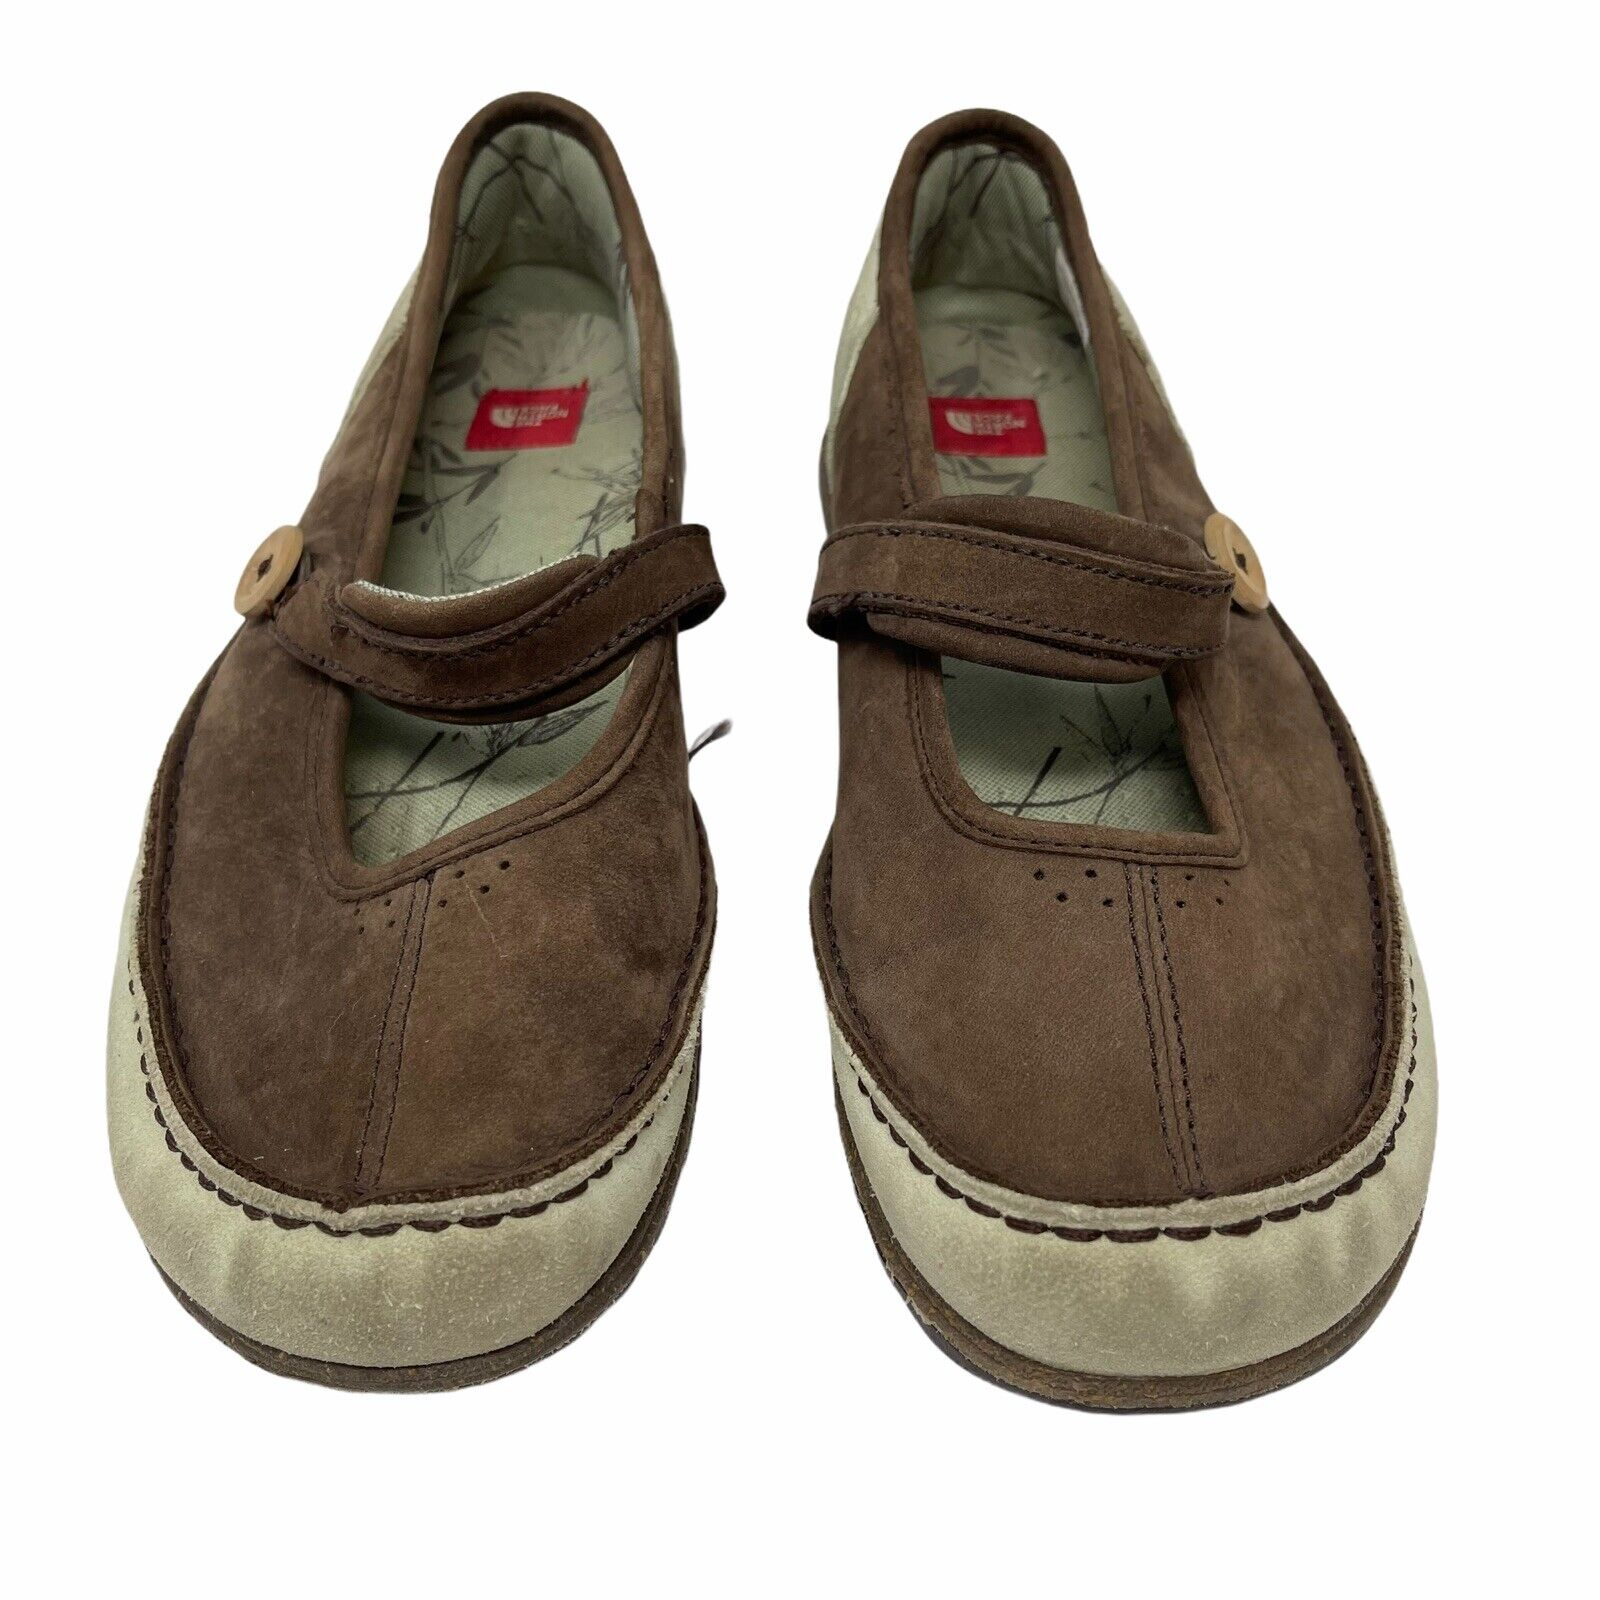 The North Face Sydney loafers size 9.5